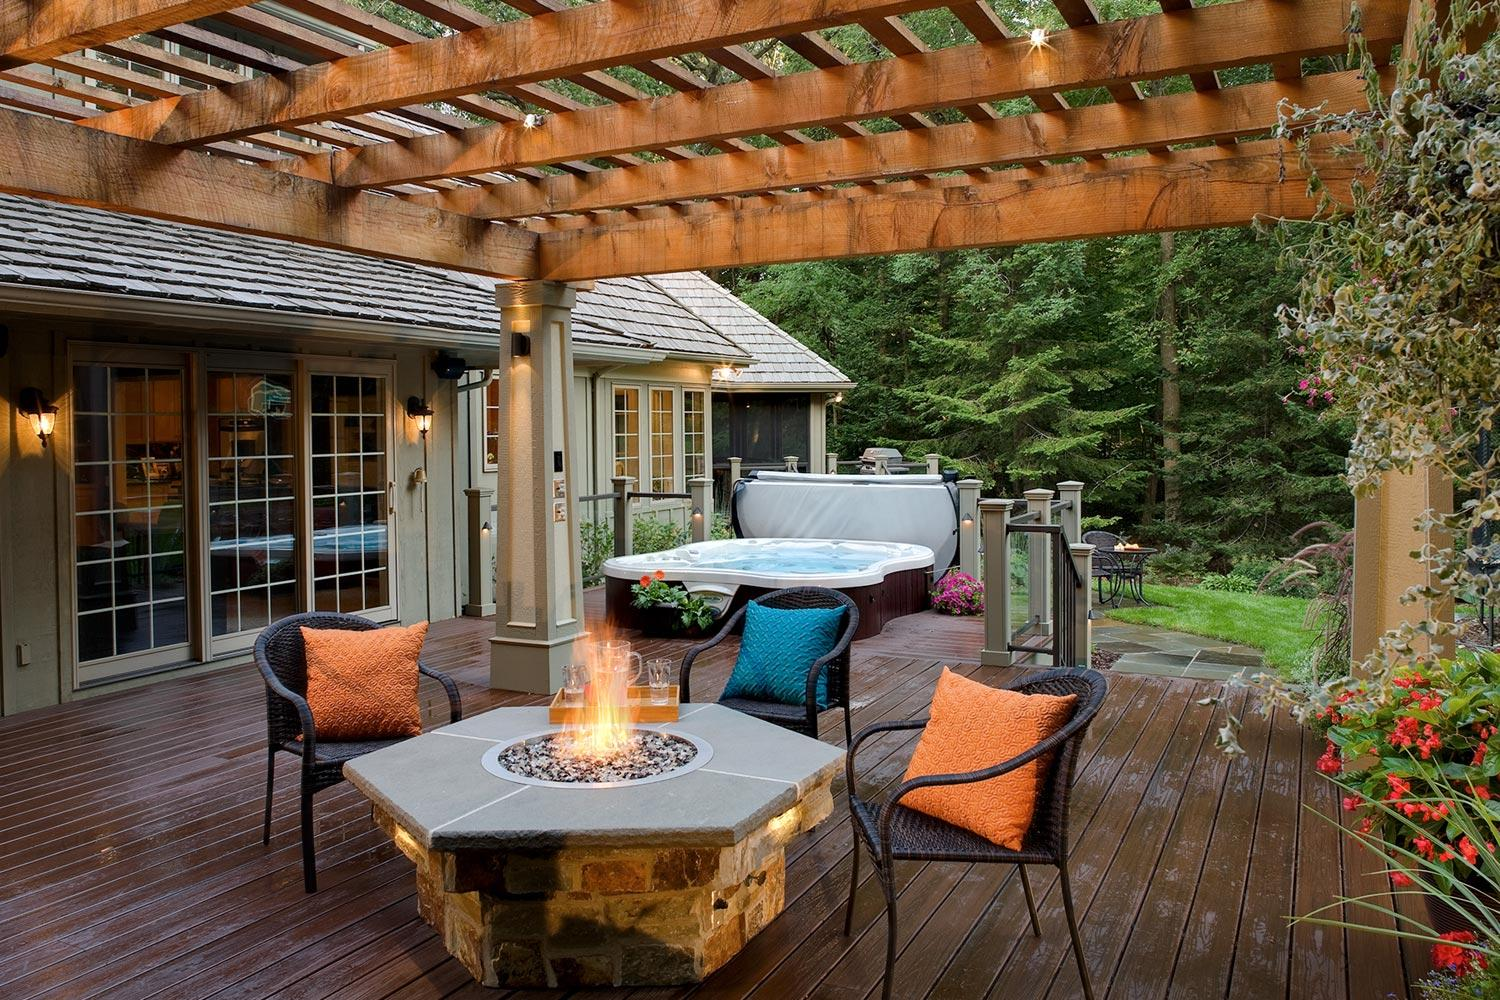 Deck with Firetable and Hot Tub in an Award-Winning Landscape